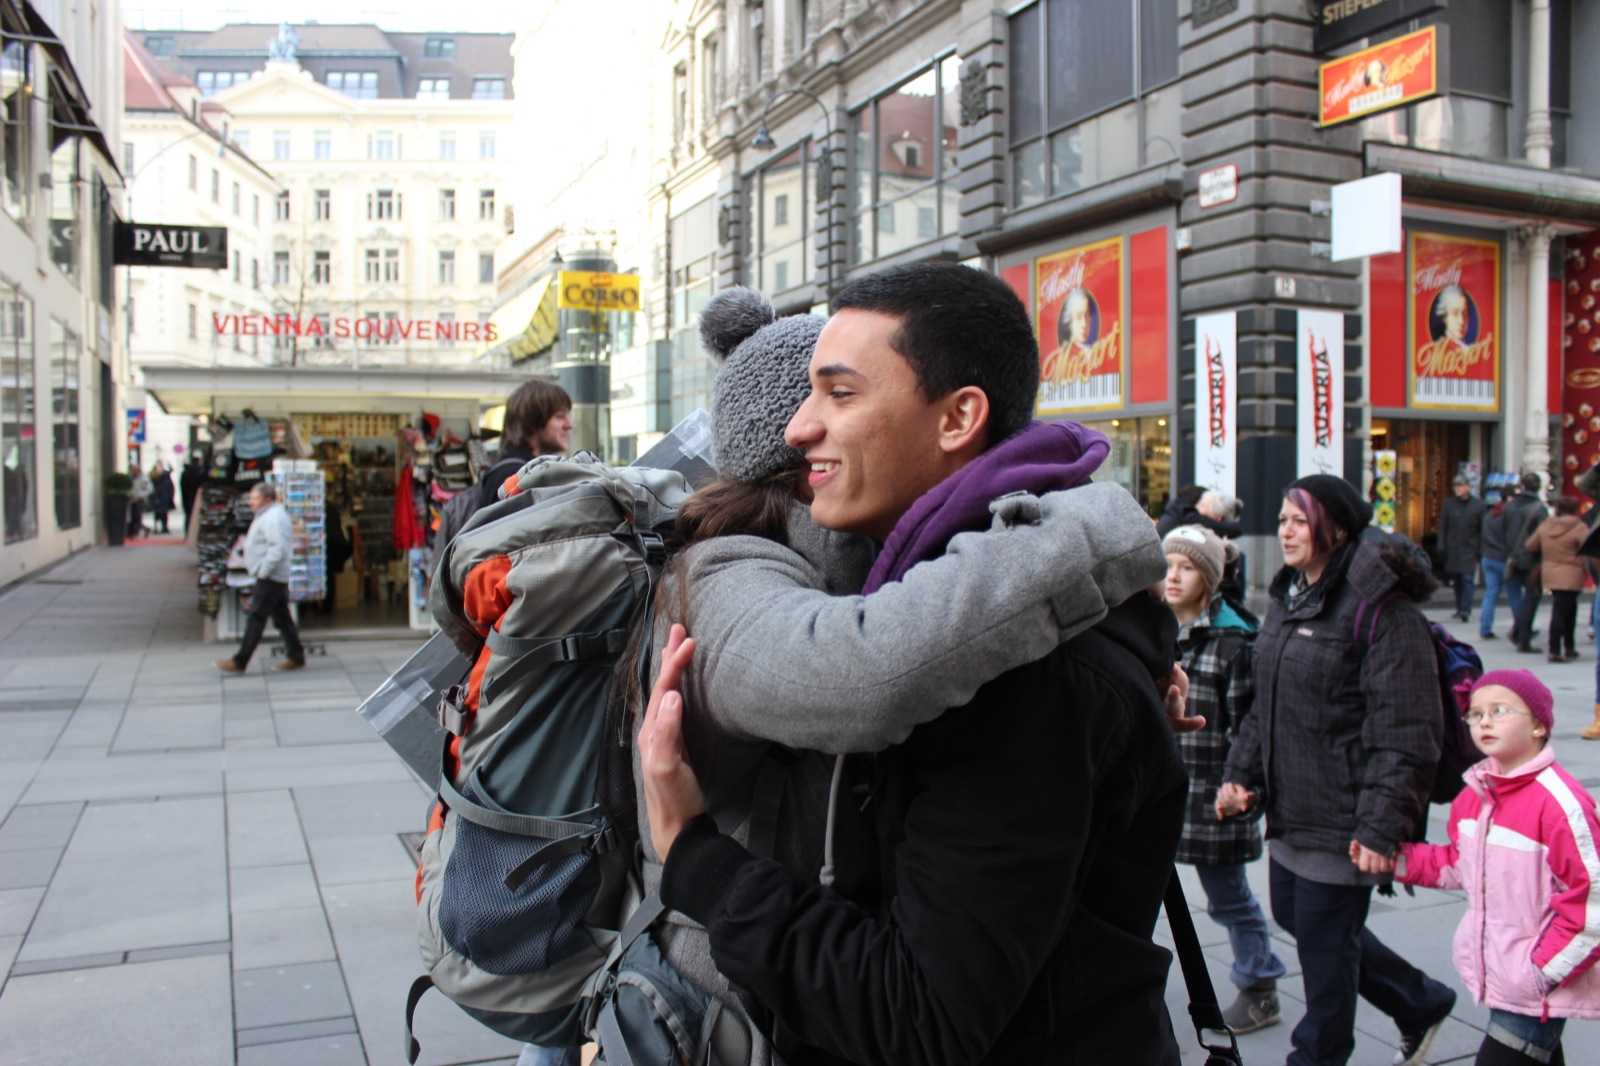 Free Hugs Vienna February 15th, 2014 - Picture by Alexander Holly